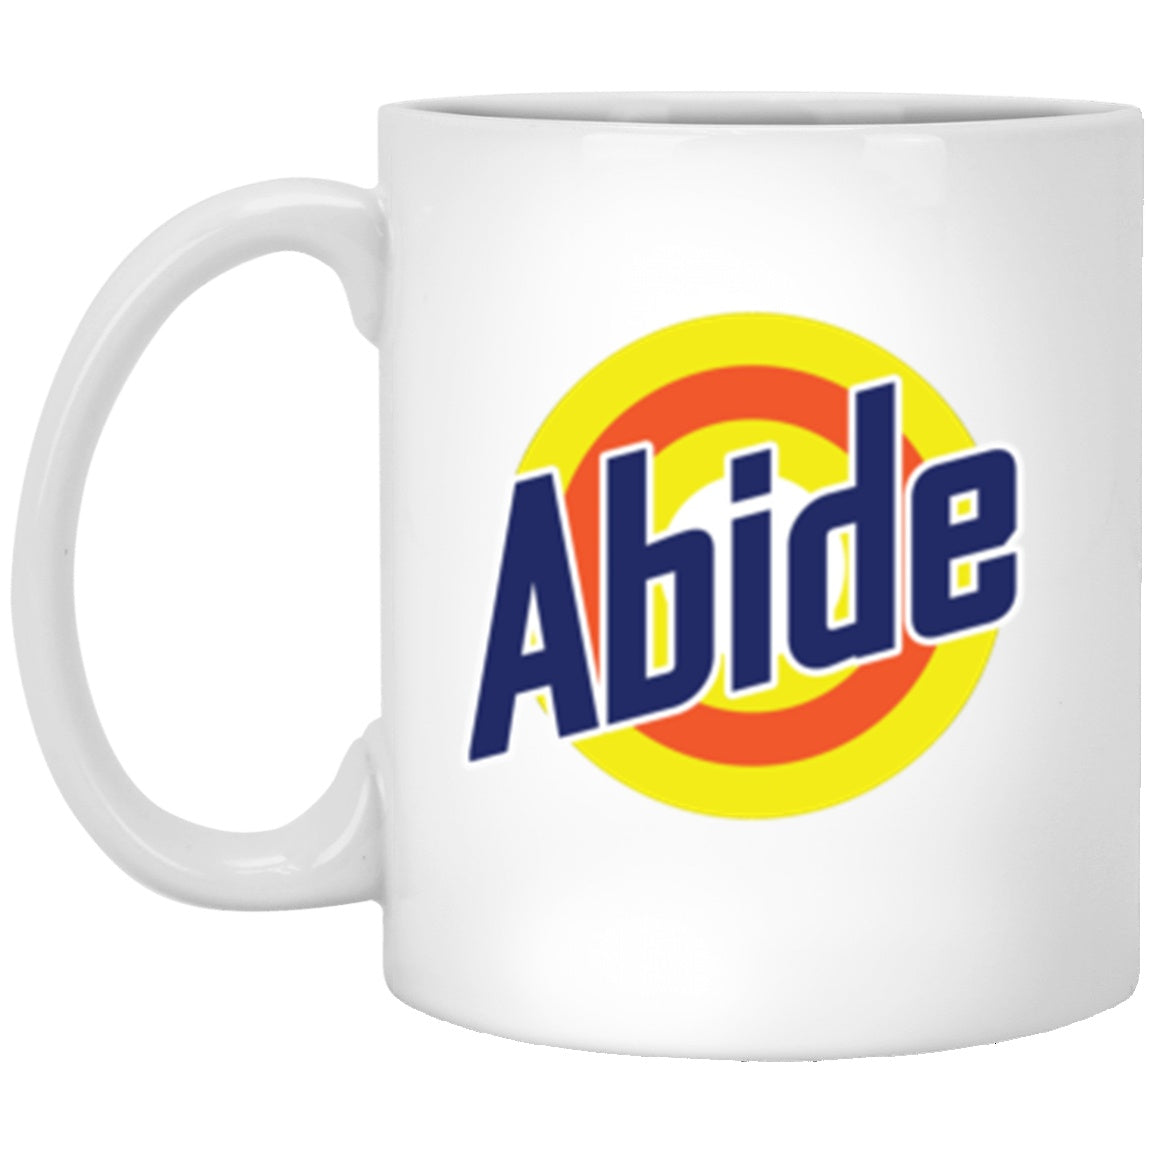 Drinkware - Abide Tide White Mug 11oz (2-sided)